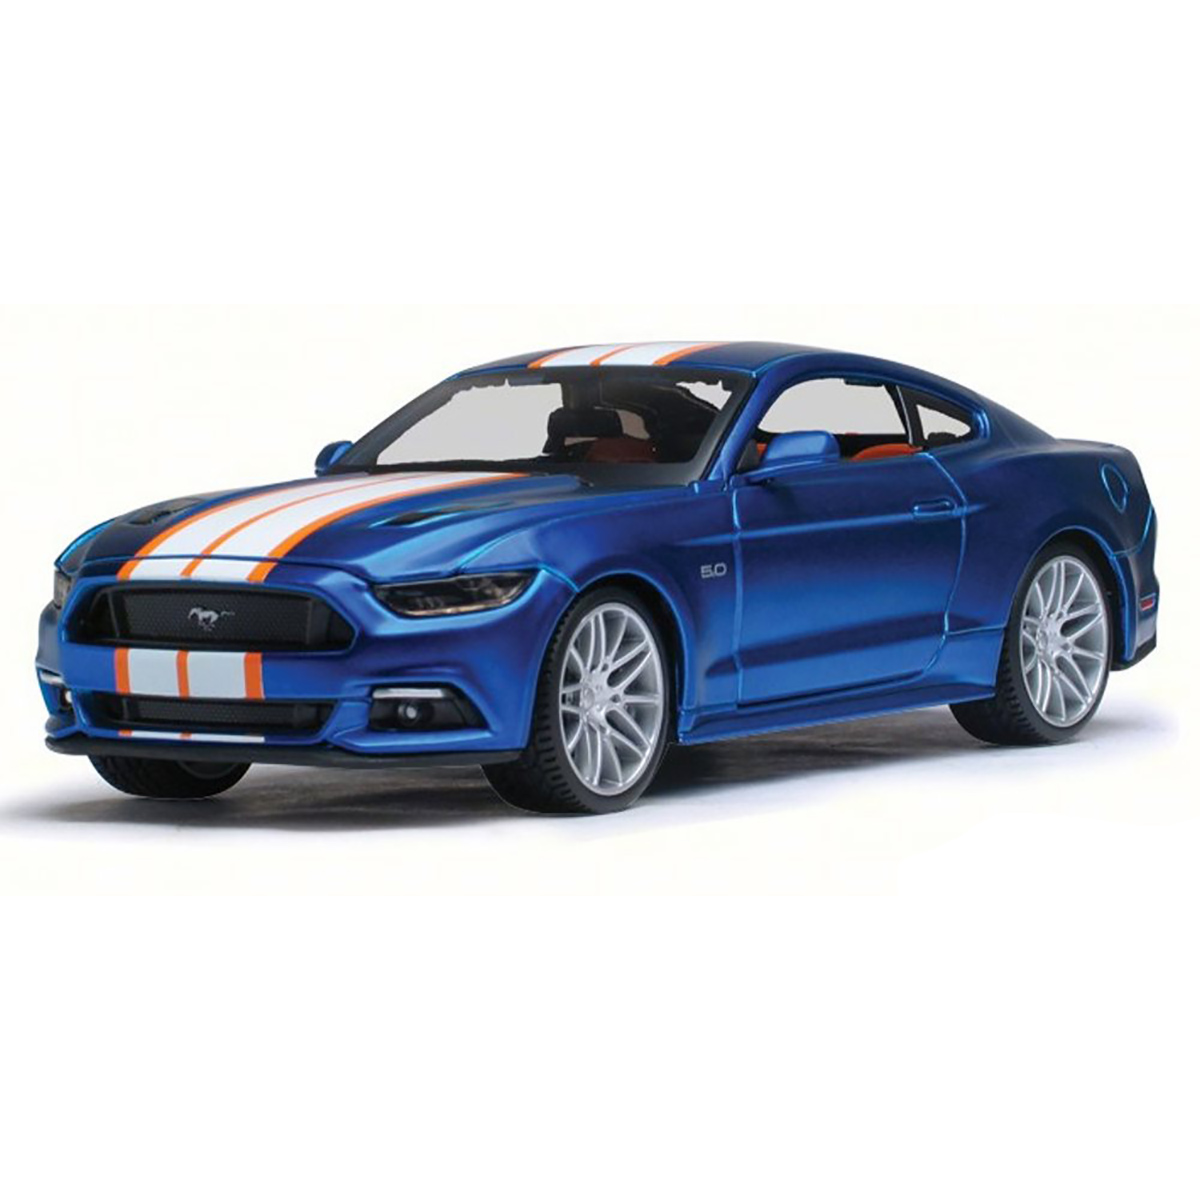 Maisto Custom Shop 2015 Ford Mustang GT 1:24 Scale Diecast